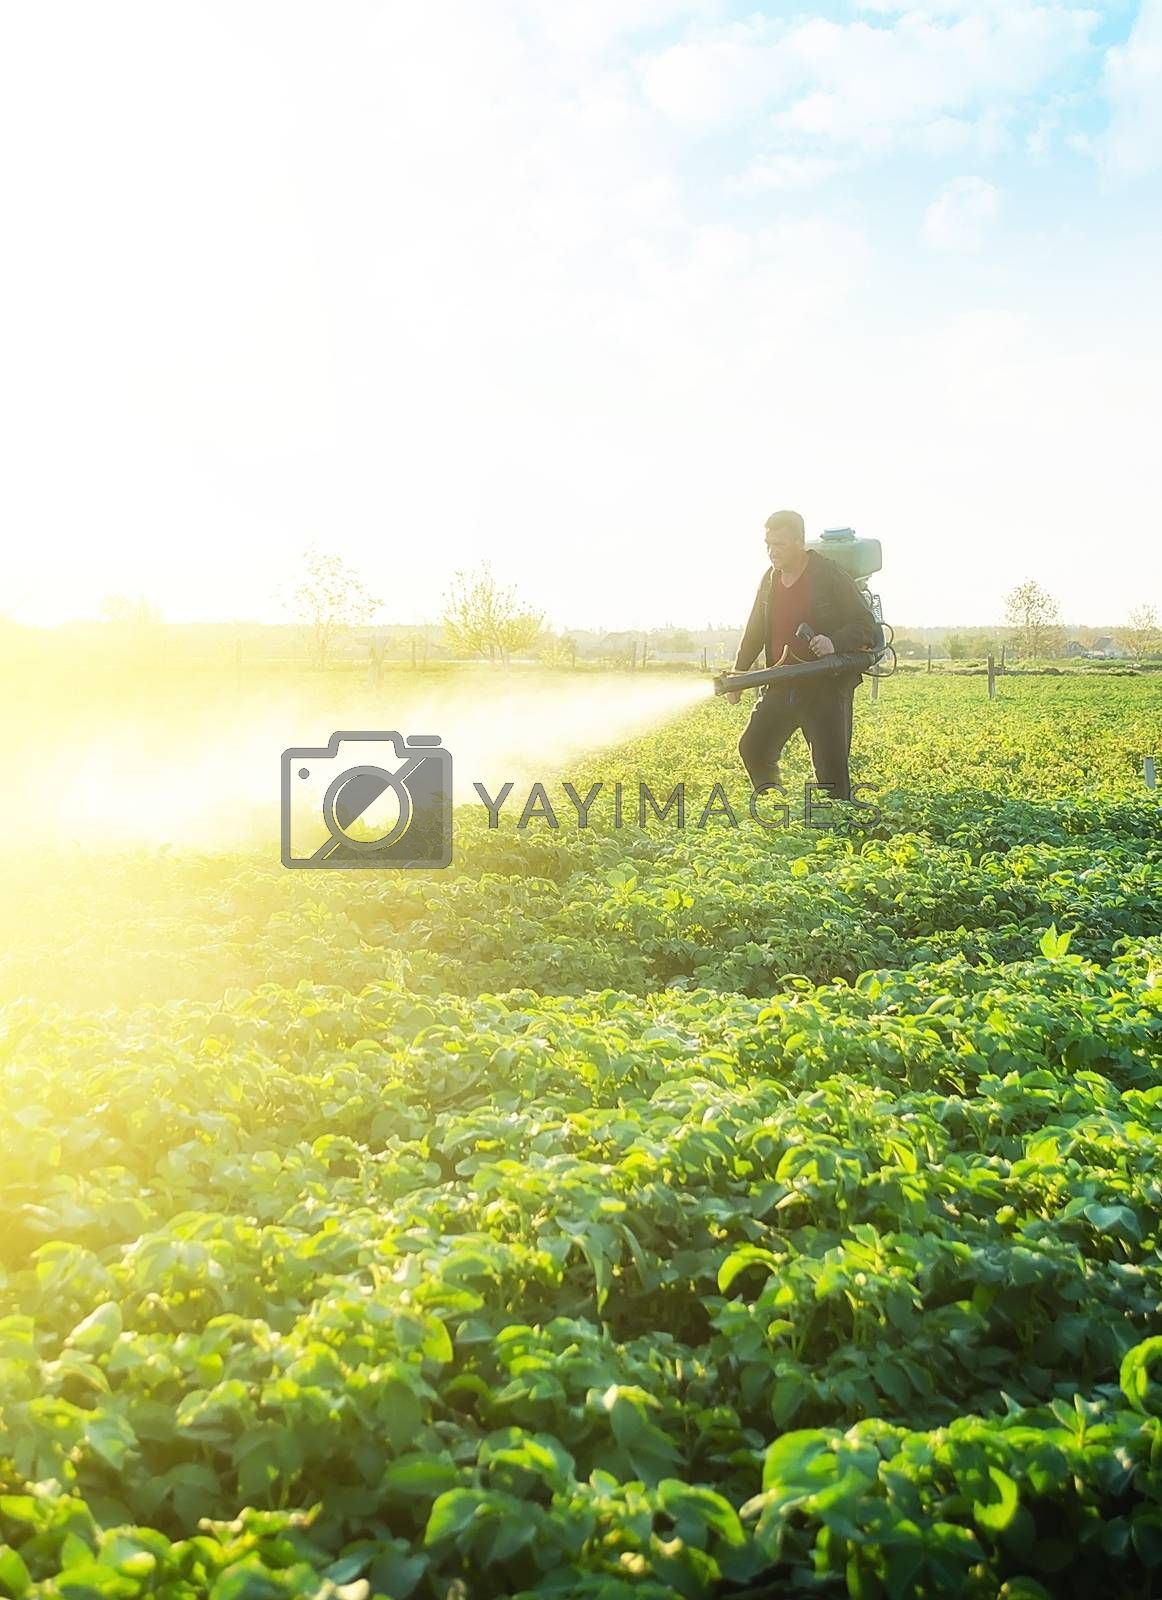 Farmer spray crops with pesticides. The use of chemicals in agriculture. Agriculture and agribusiness, agricultural industry. Protecting against insect plants and fungal infections. Small farm